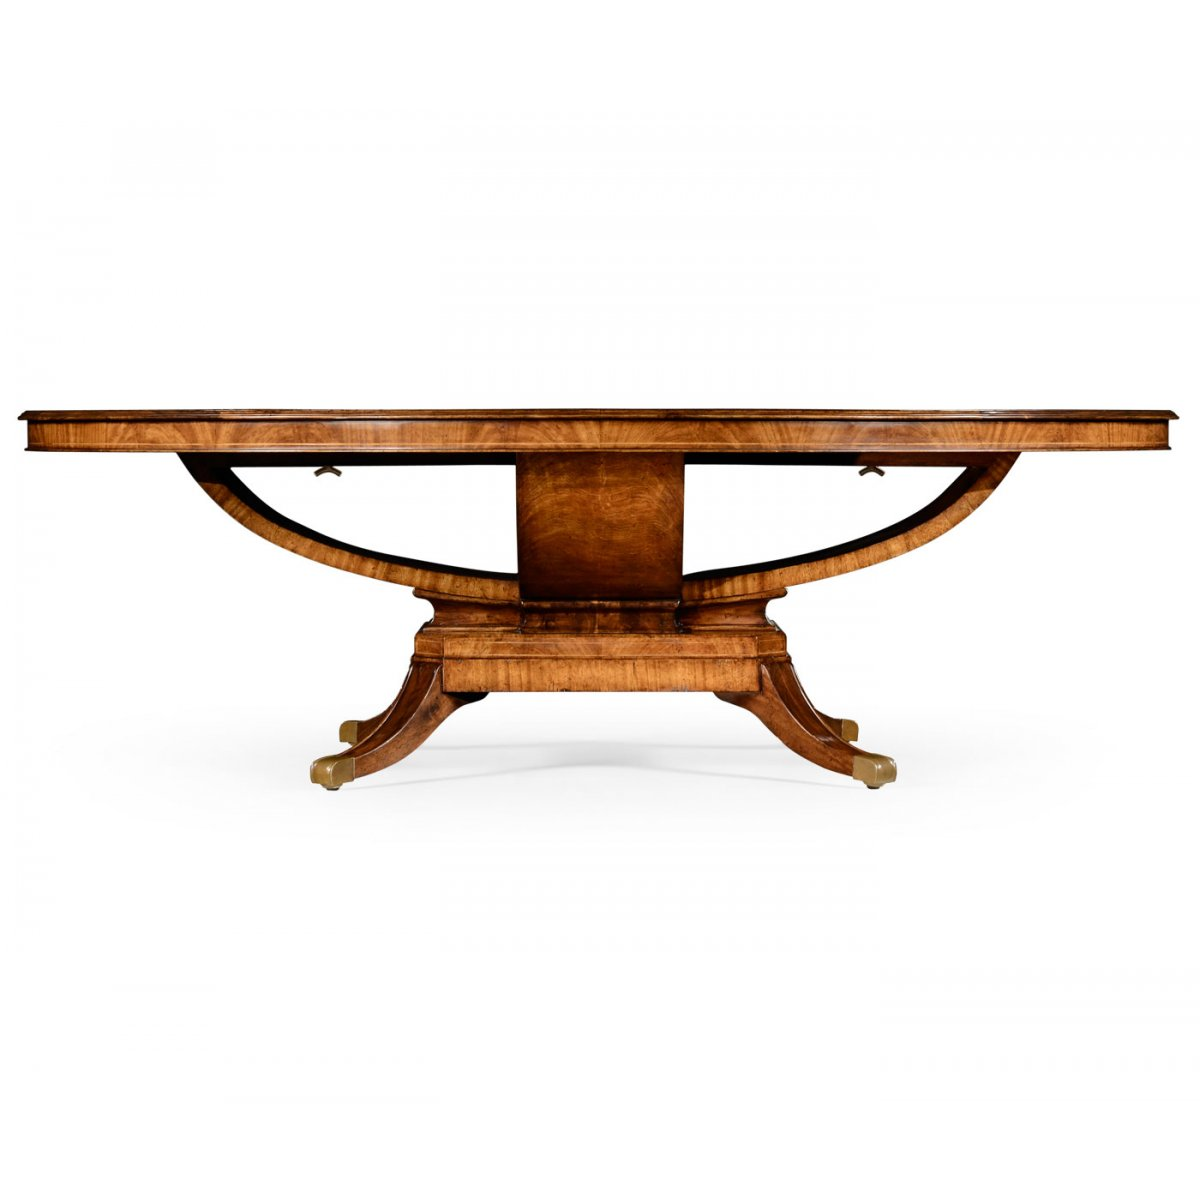 8 Seater Oval Dining Table Walnut Swanky Interiors : 1439243597 27937700 from swankyinteriors.co.uk size 1200 x 1200 jpeg 71kB